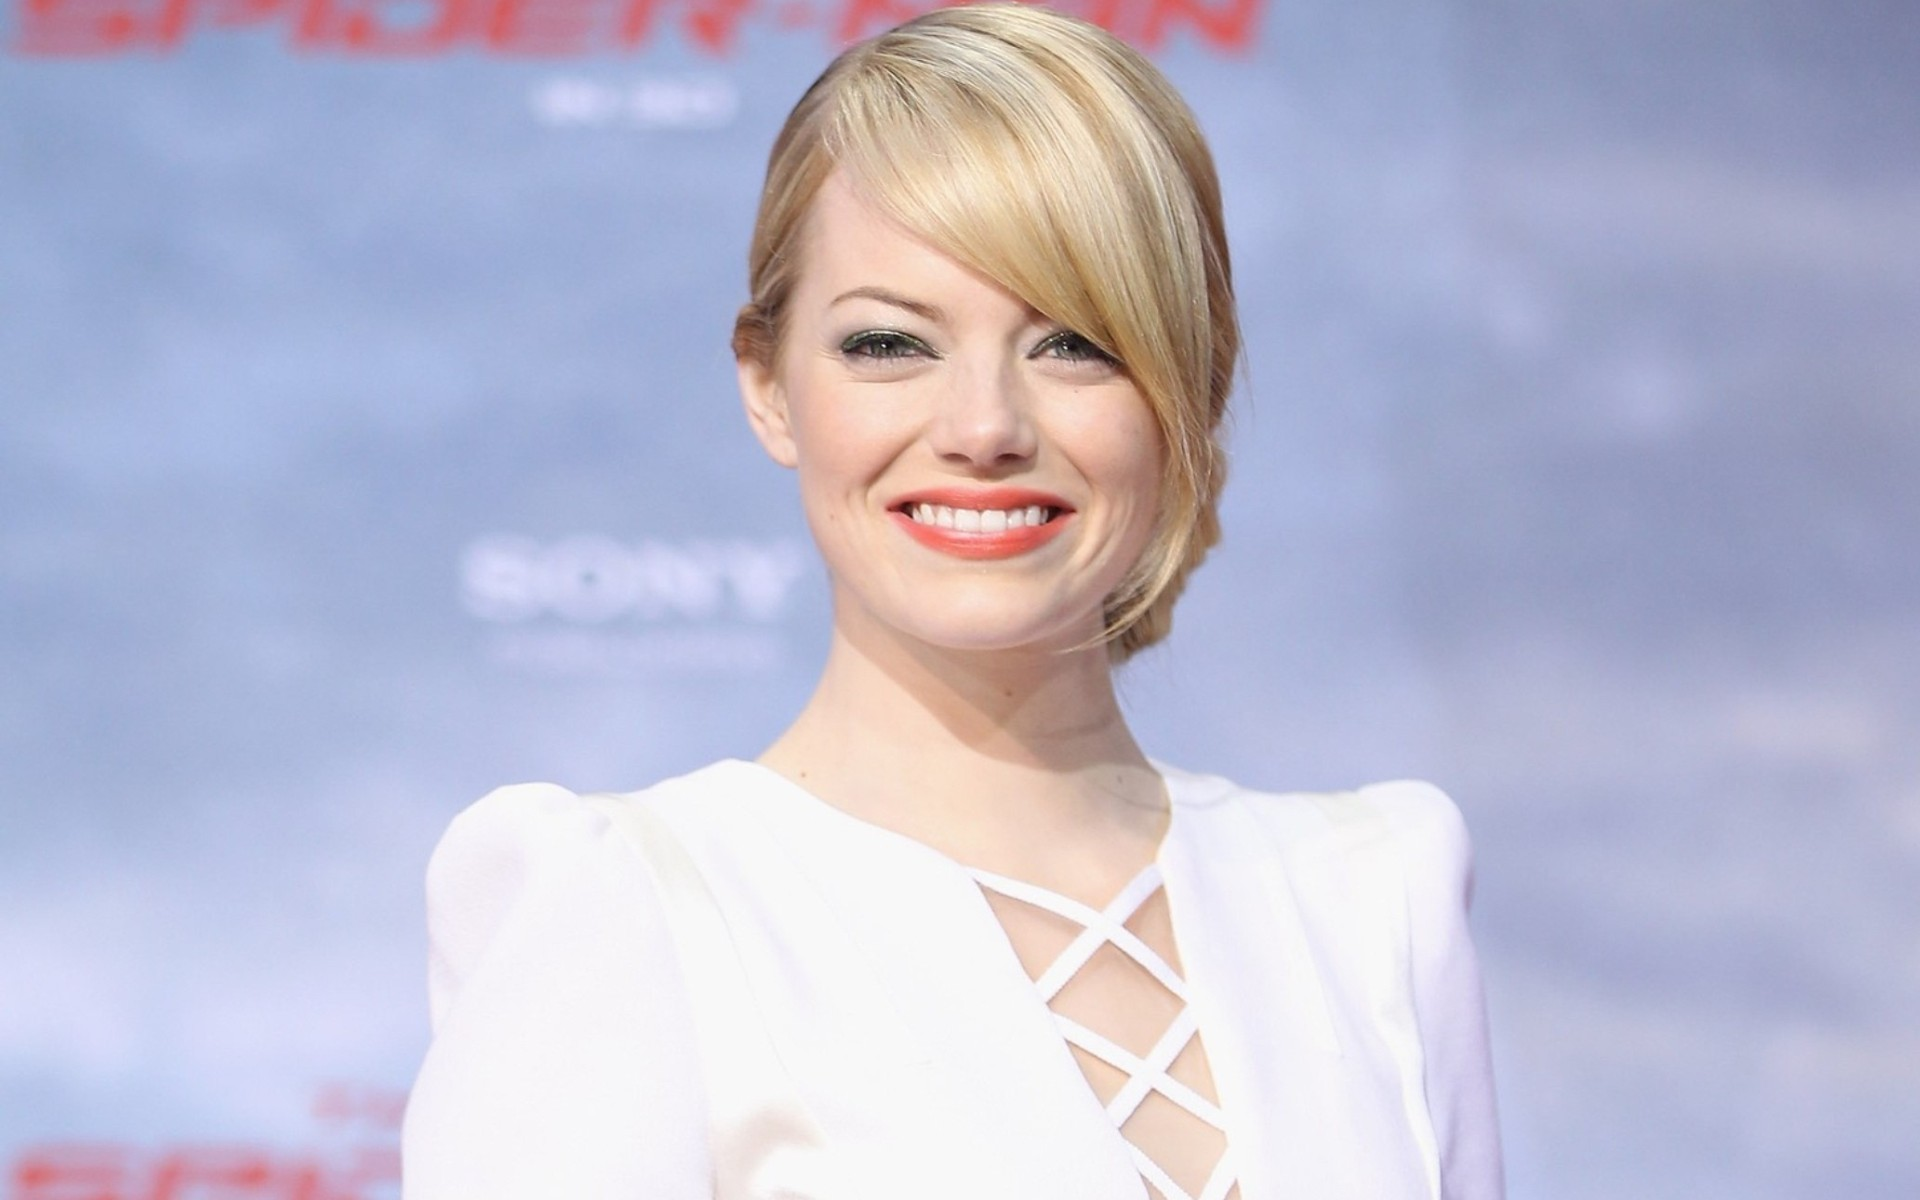 Emma Stone Celebrity HD Wallpaper 61006